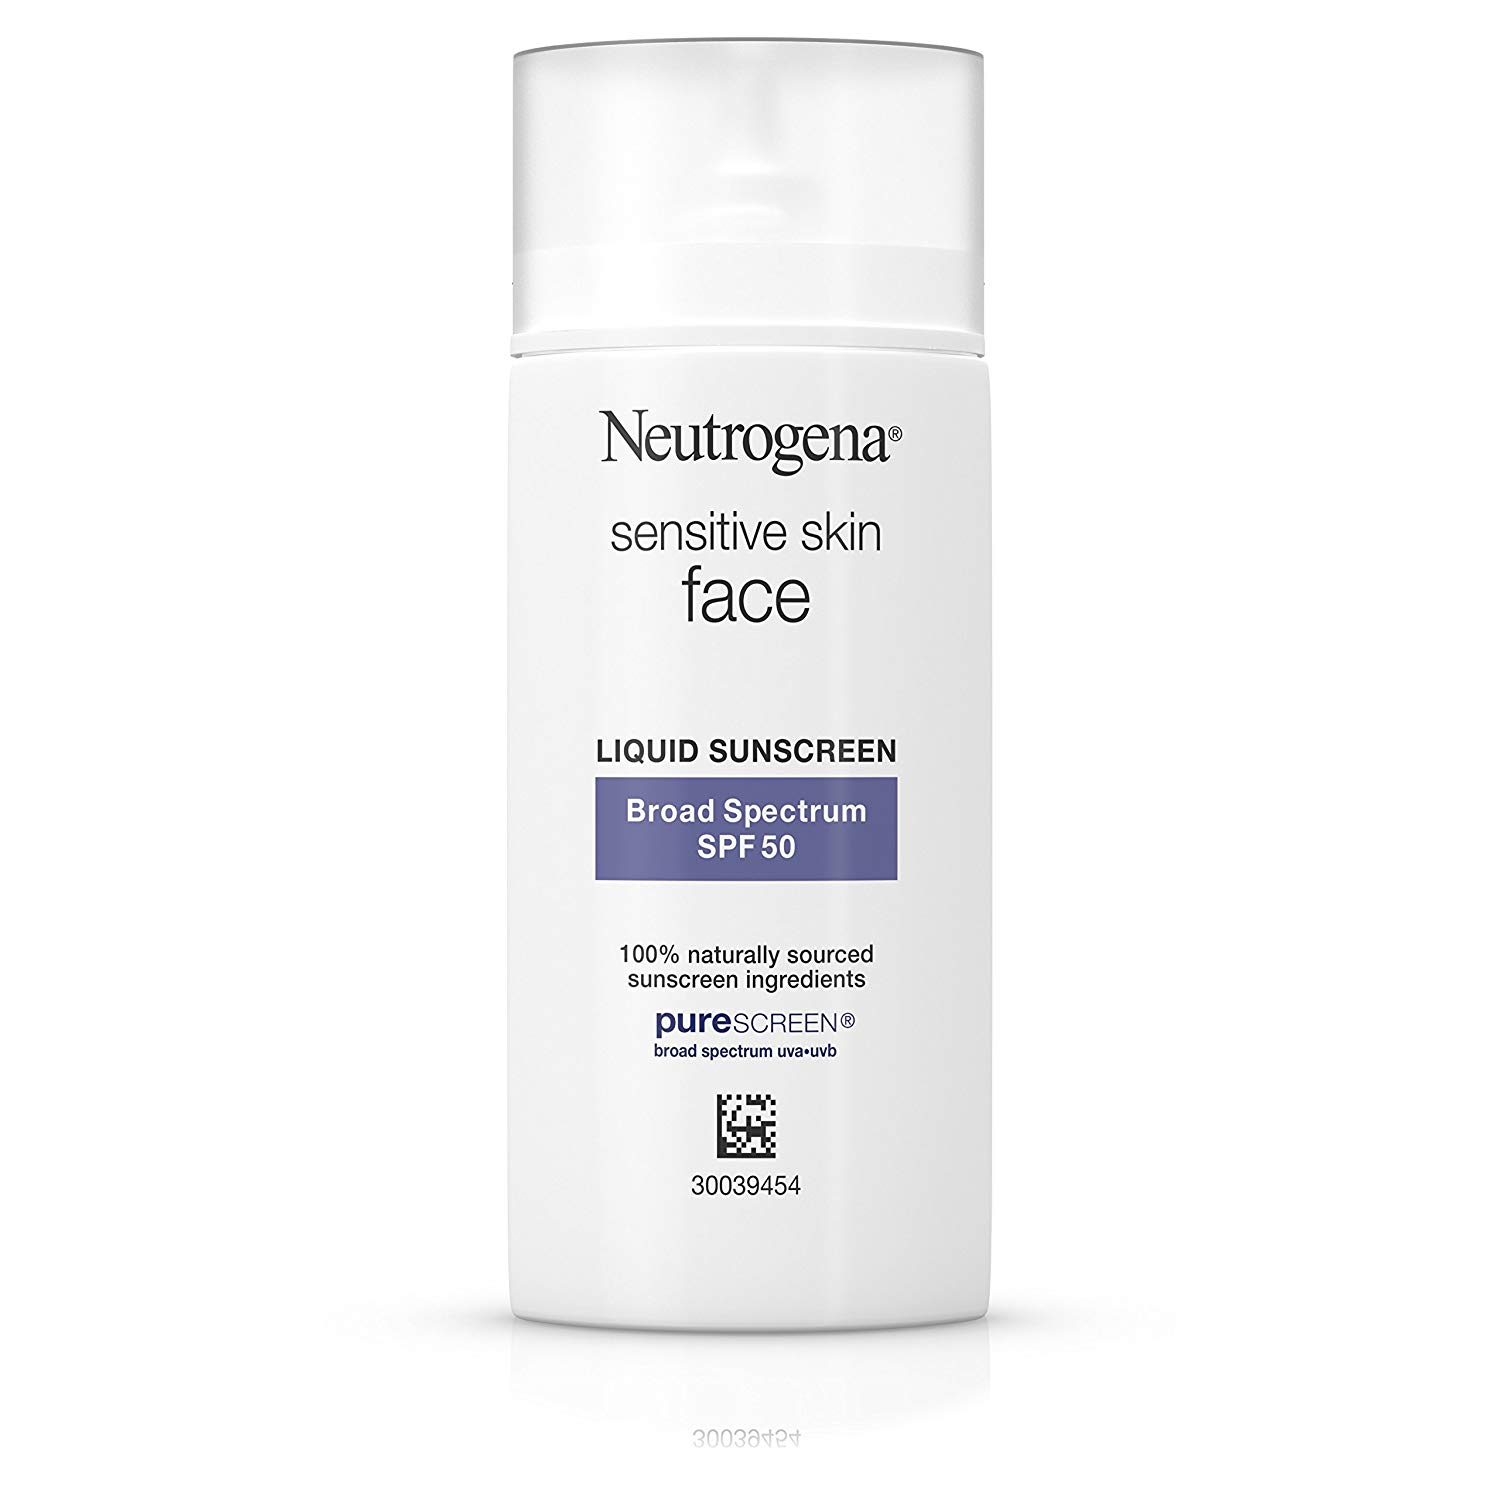 Neutrogena Best Outdoor Tanning Lotions | Best tanning oil with SPF